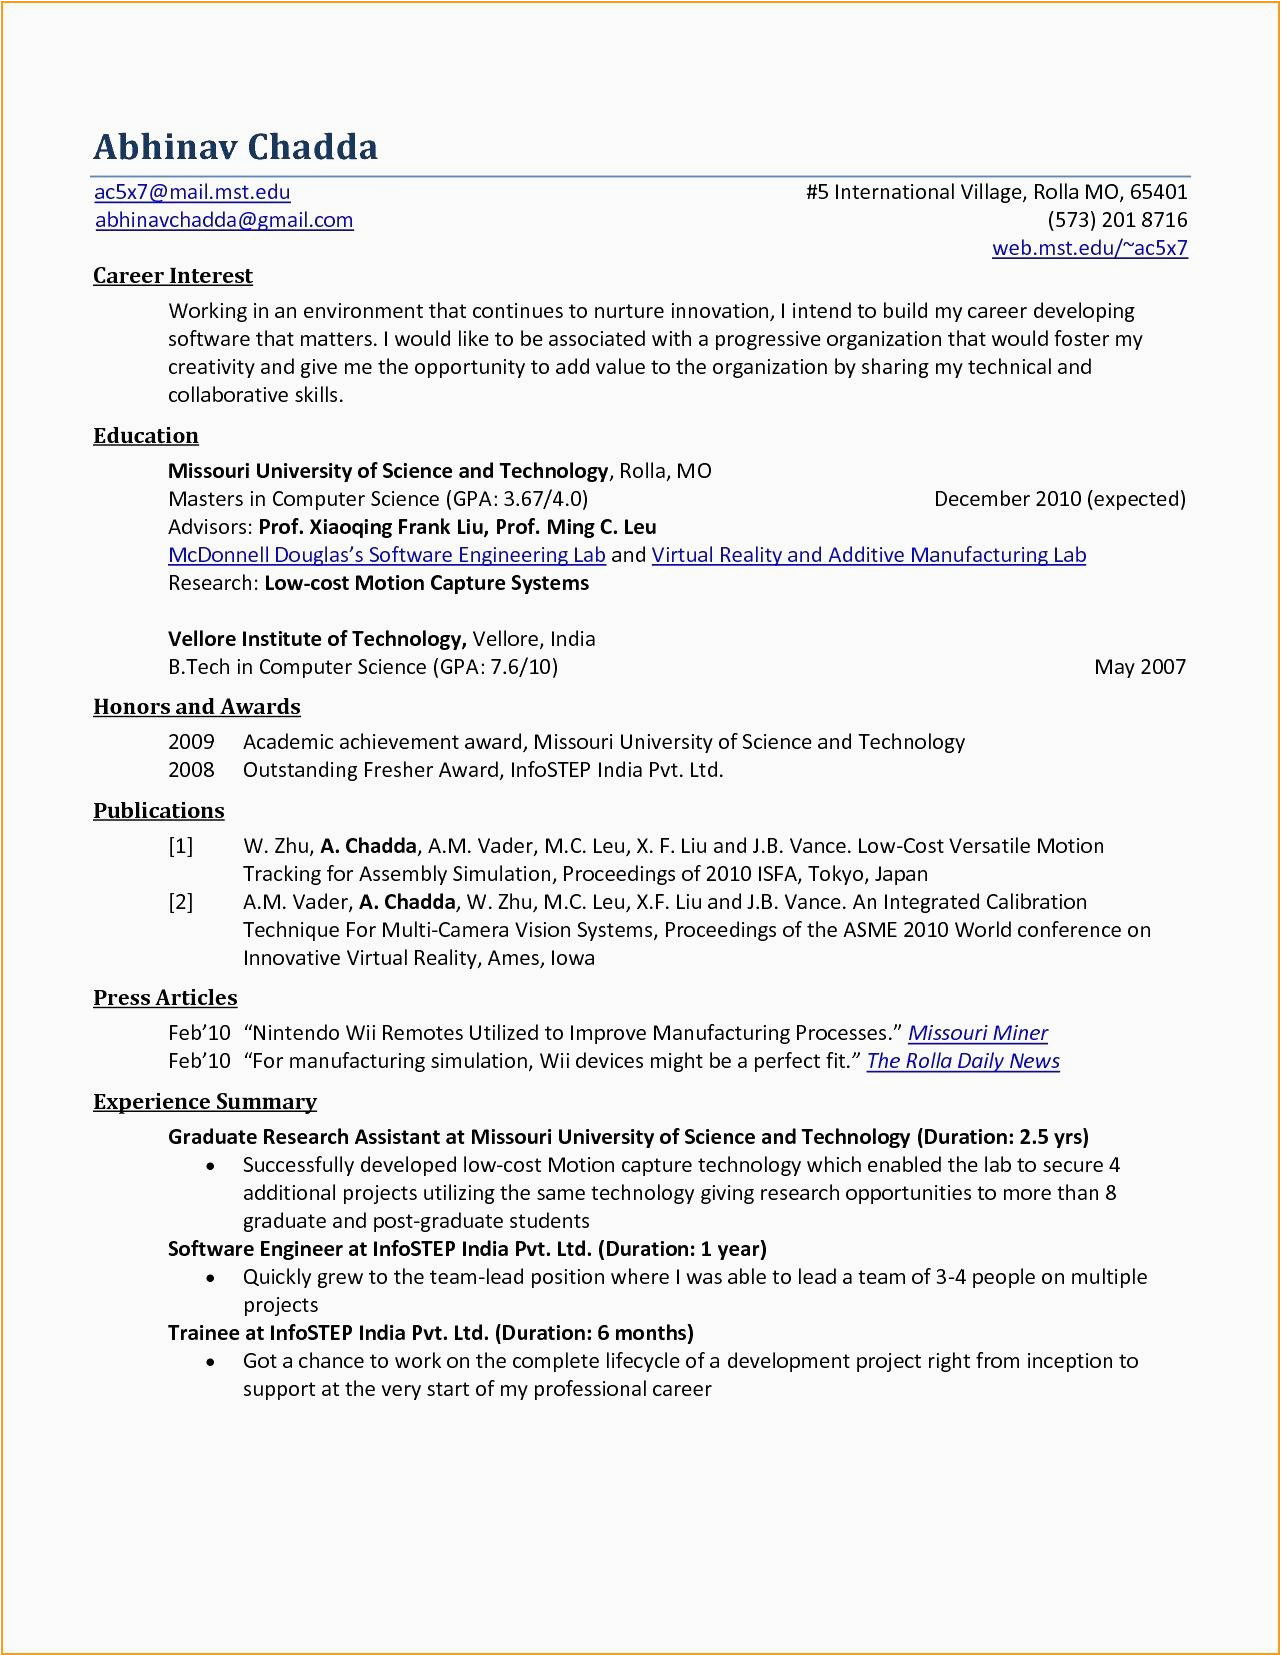 Sample Resume for Computer Science Fresh Graduate Pdf 13 Puter Science Graduate Resume Template Samples